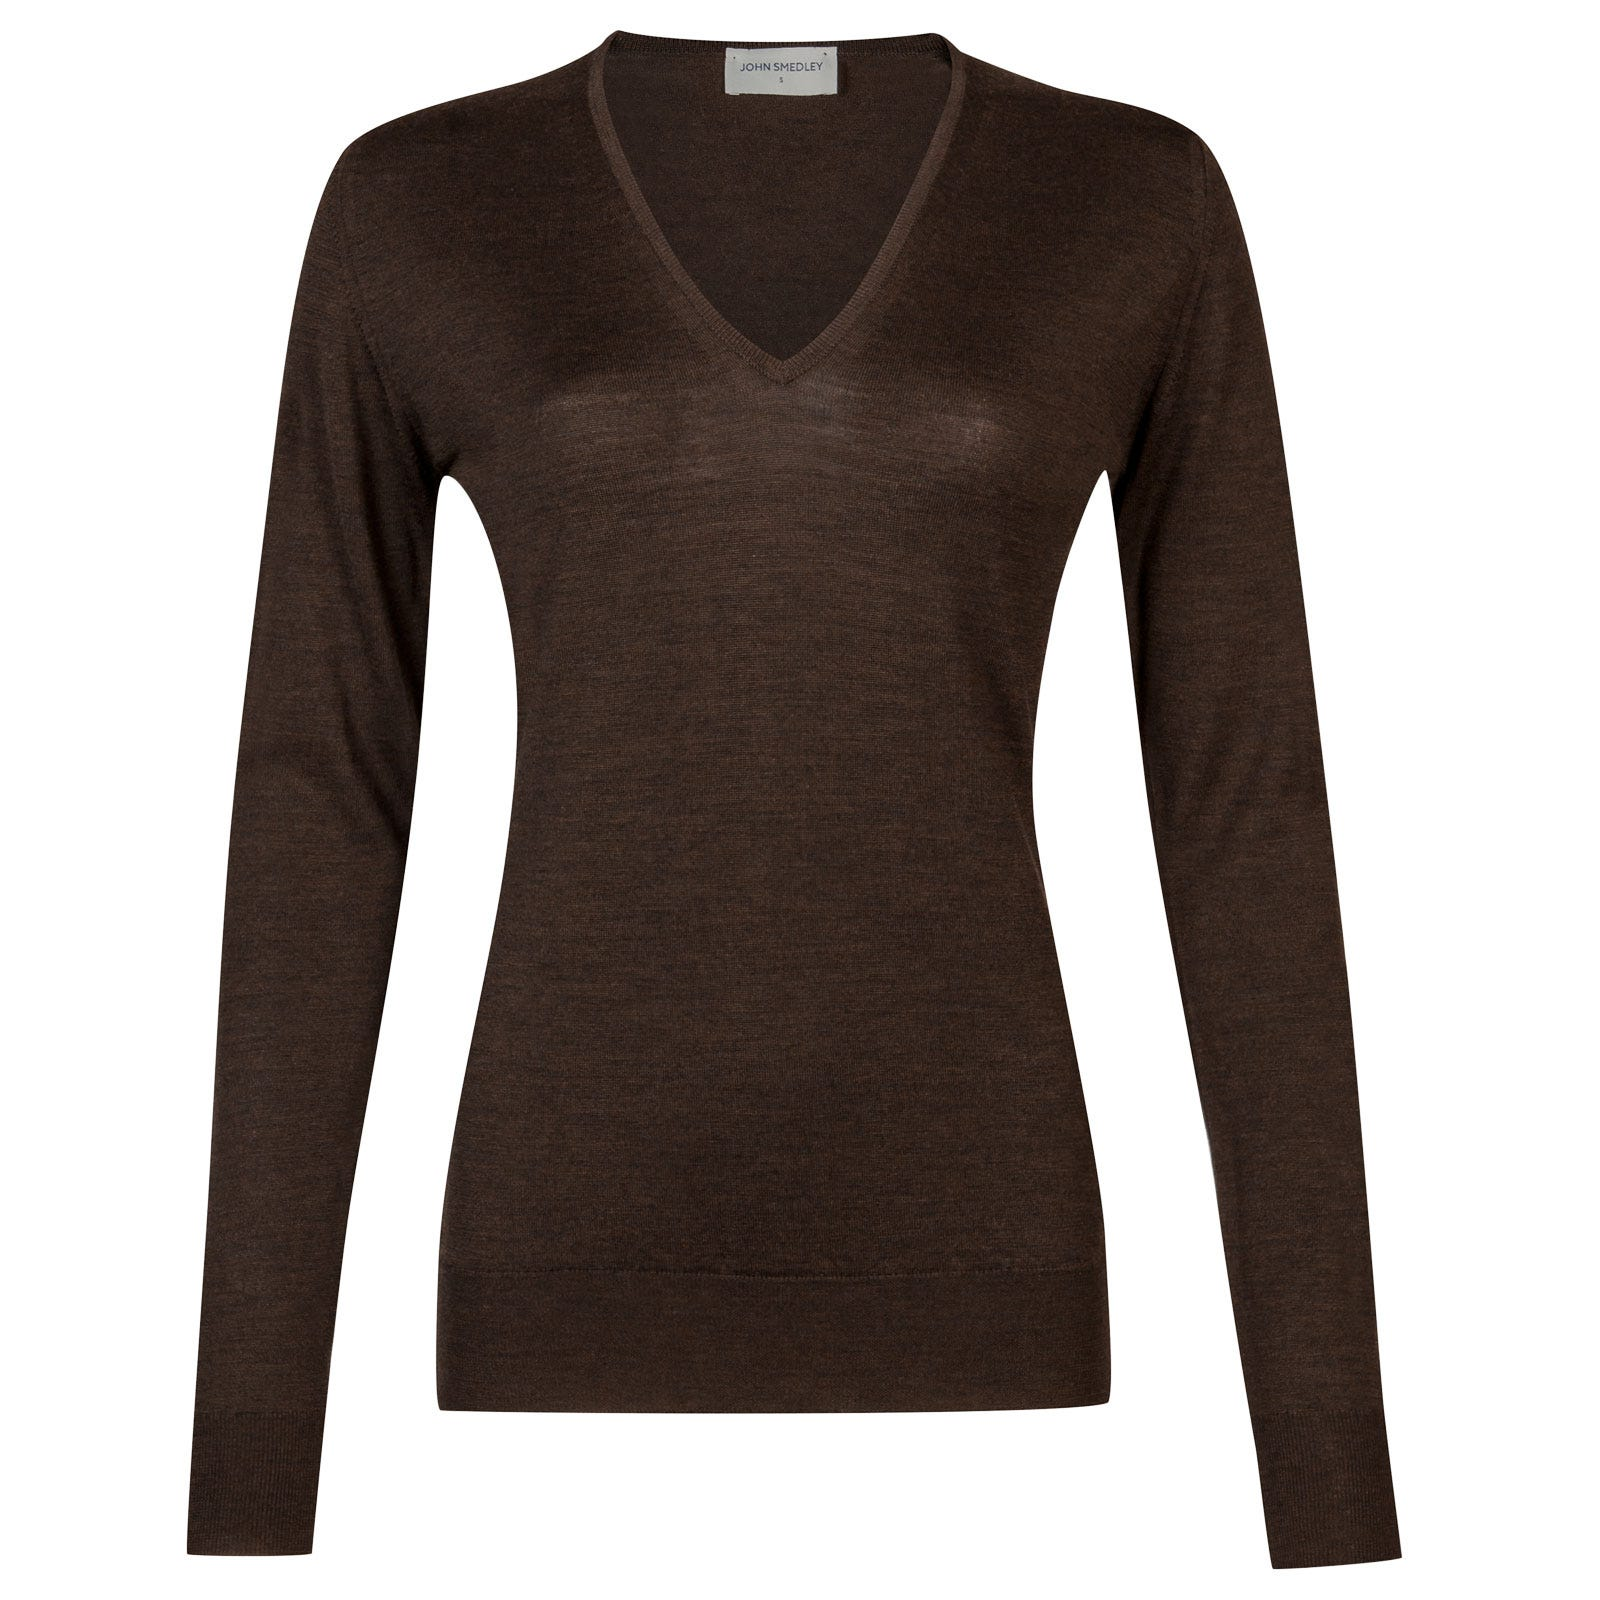 John Smedley orchid Merino Wool Sweater in Chestnut-S